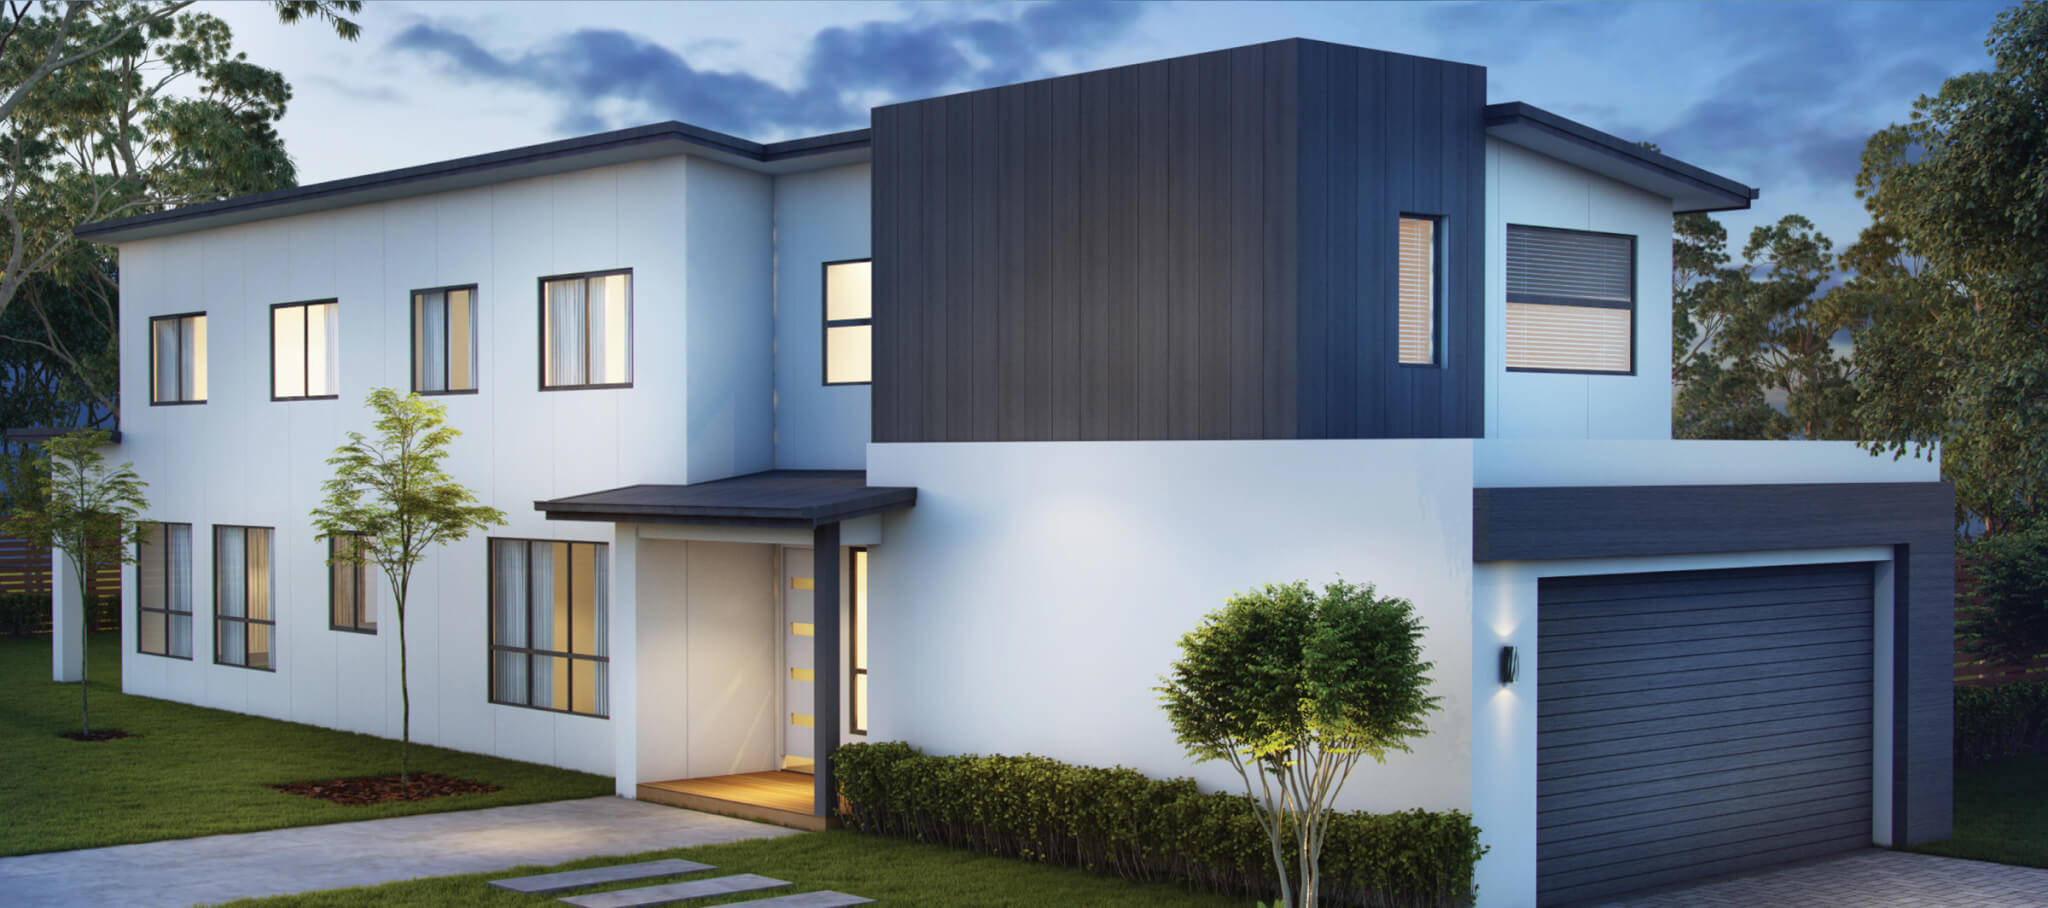 House Design Exterior Render